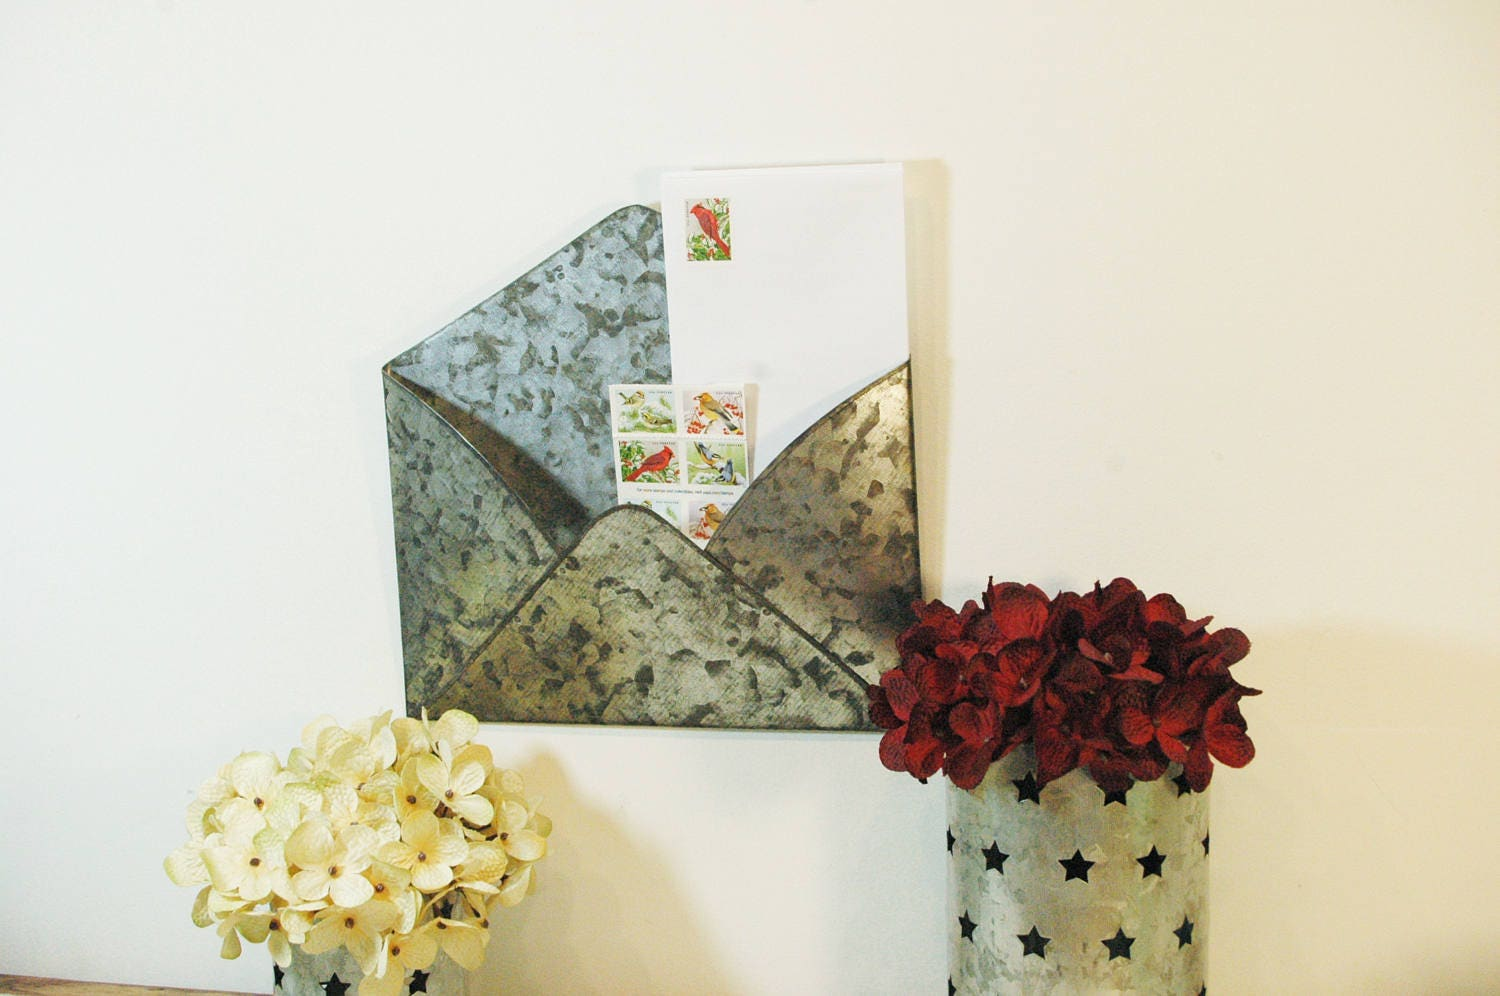 Metal Envelope Wall Decor : Metal envelope galvanized mail organizer